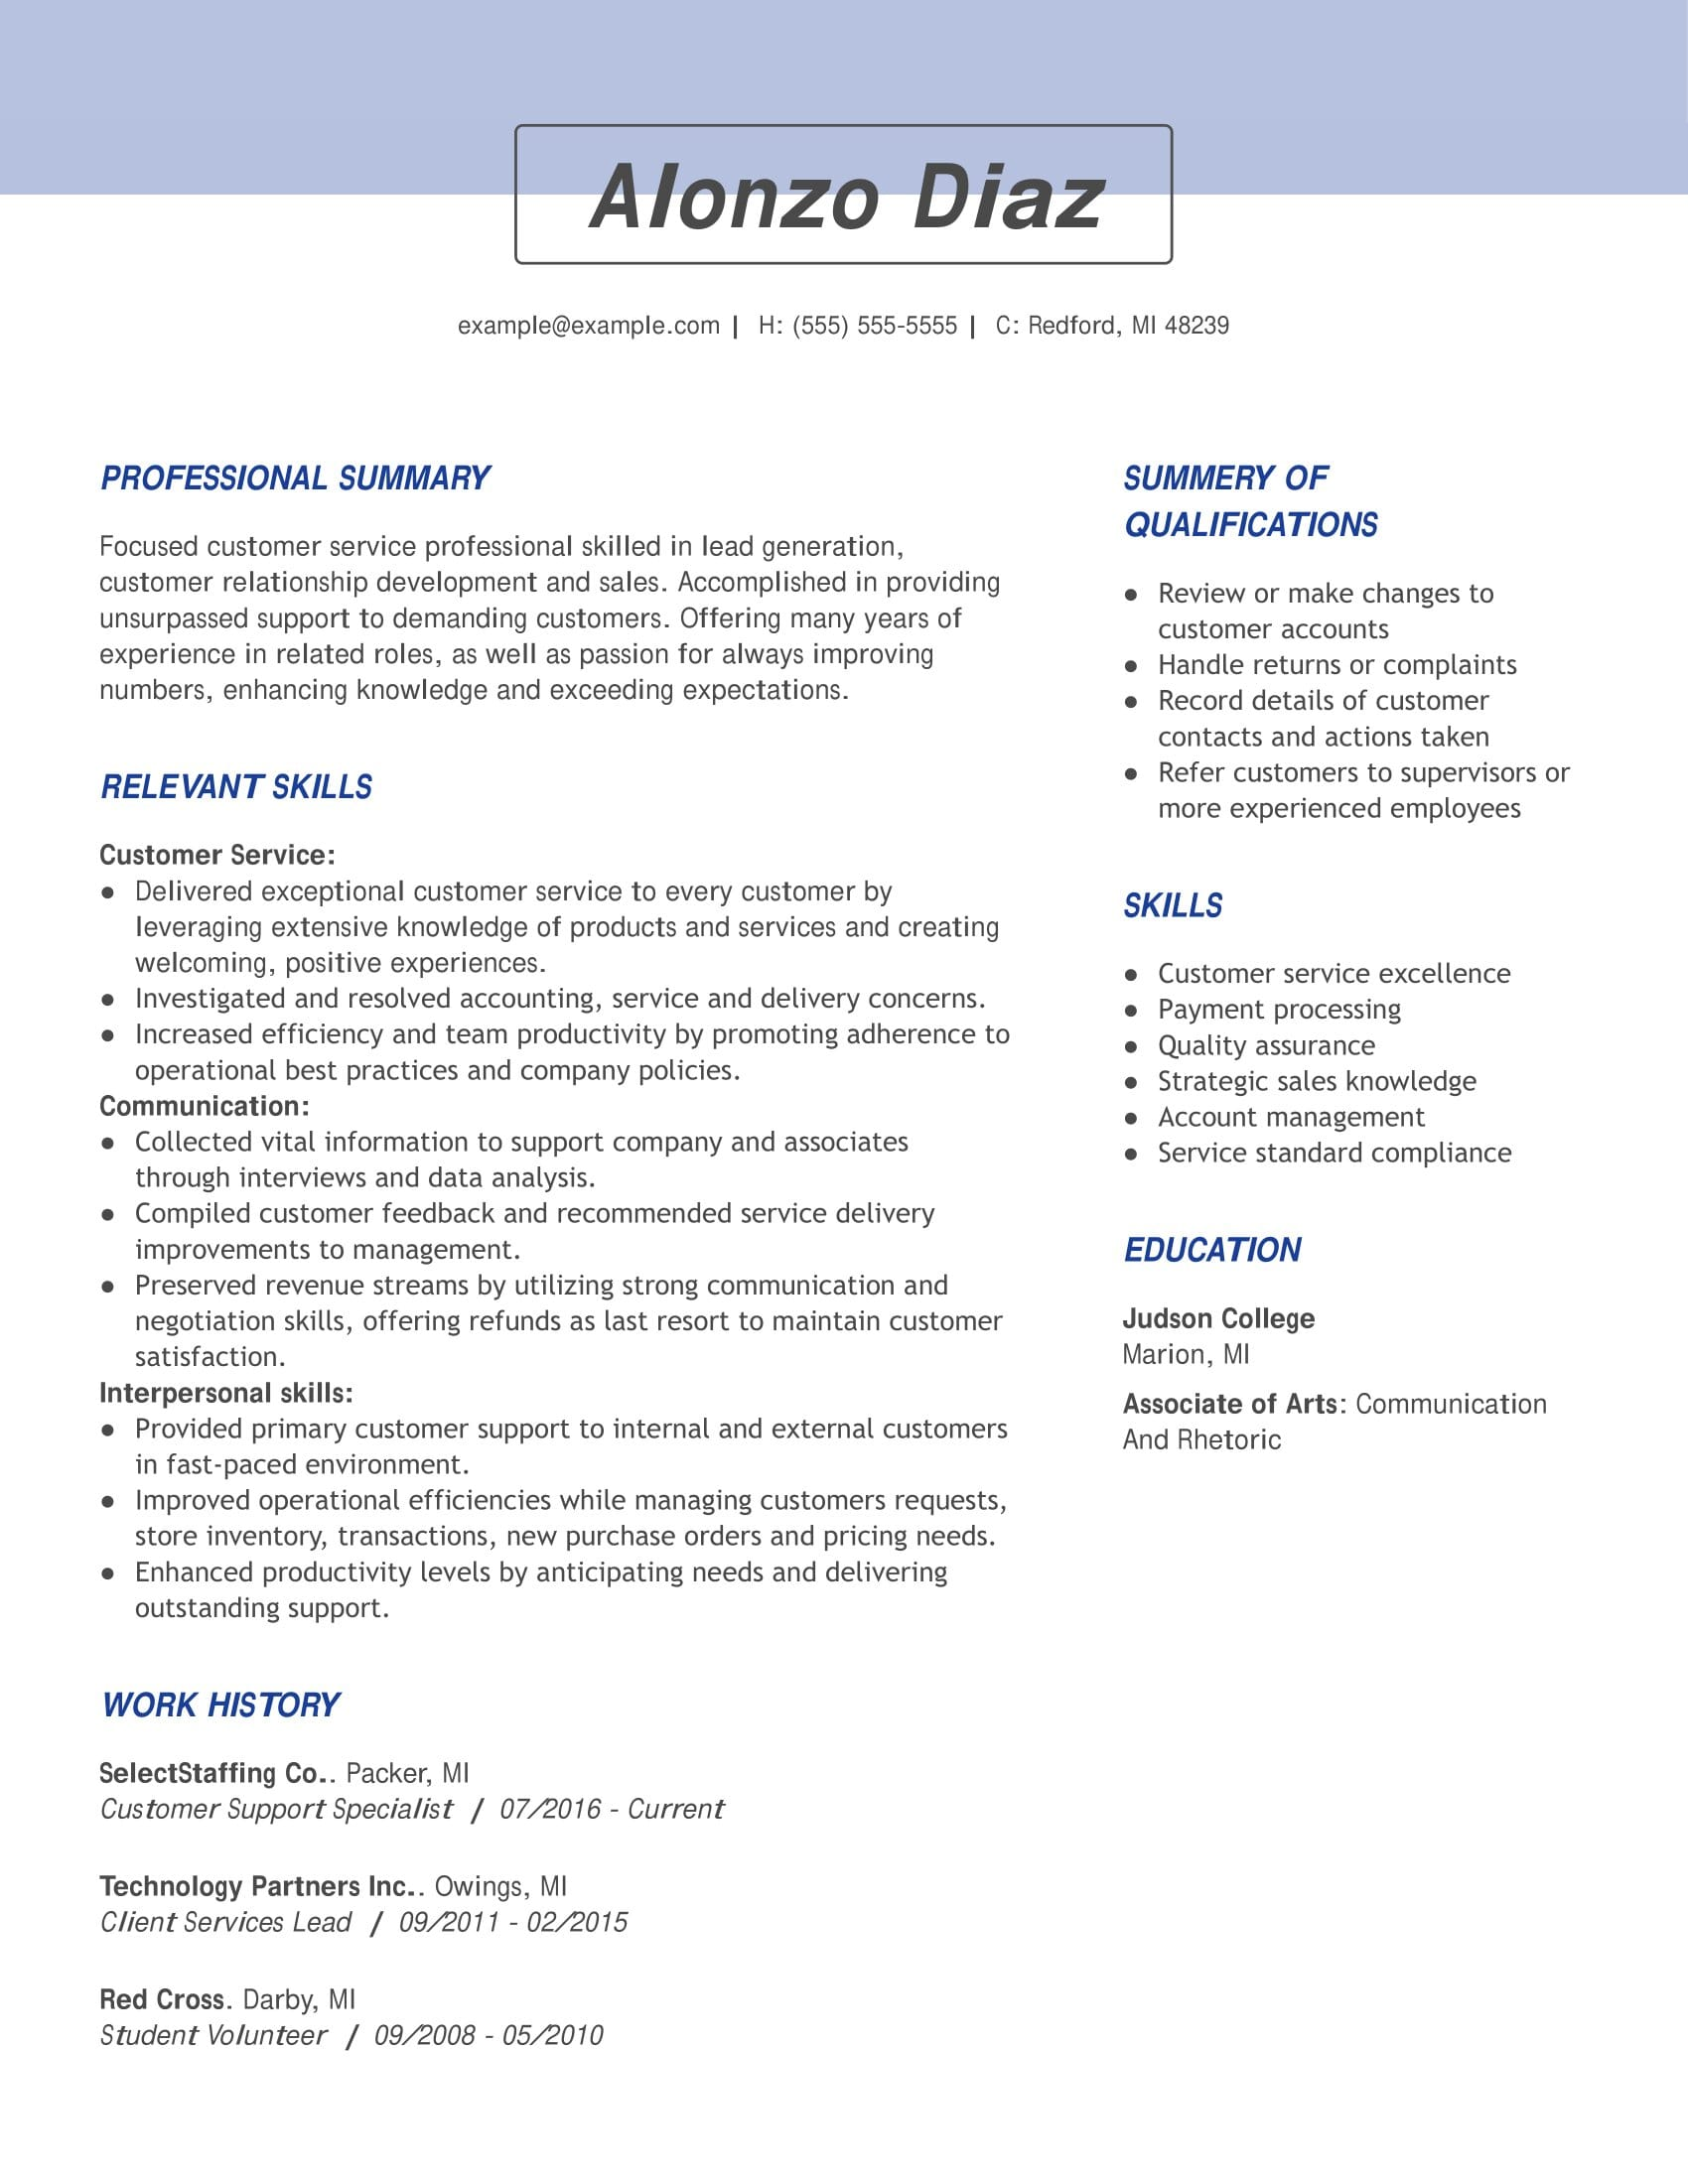 see our top customer service resume example good summary for support specialist Resume Good Summary For Resume Customer Service